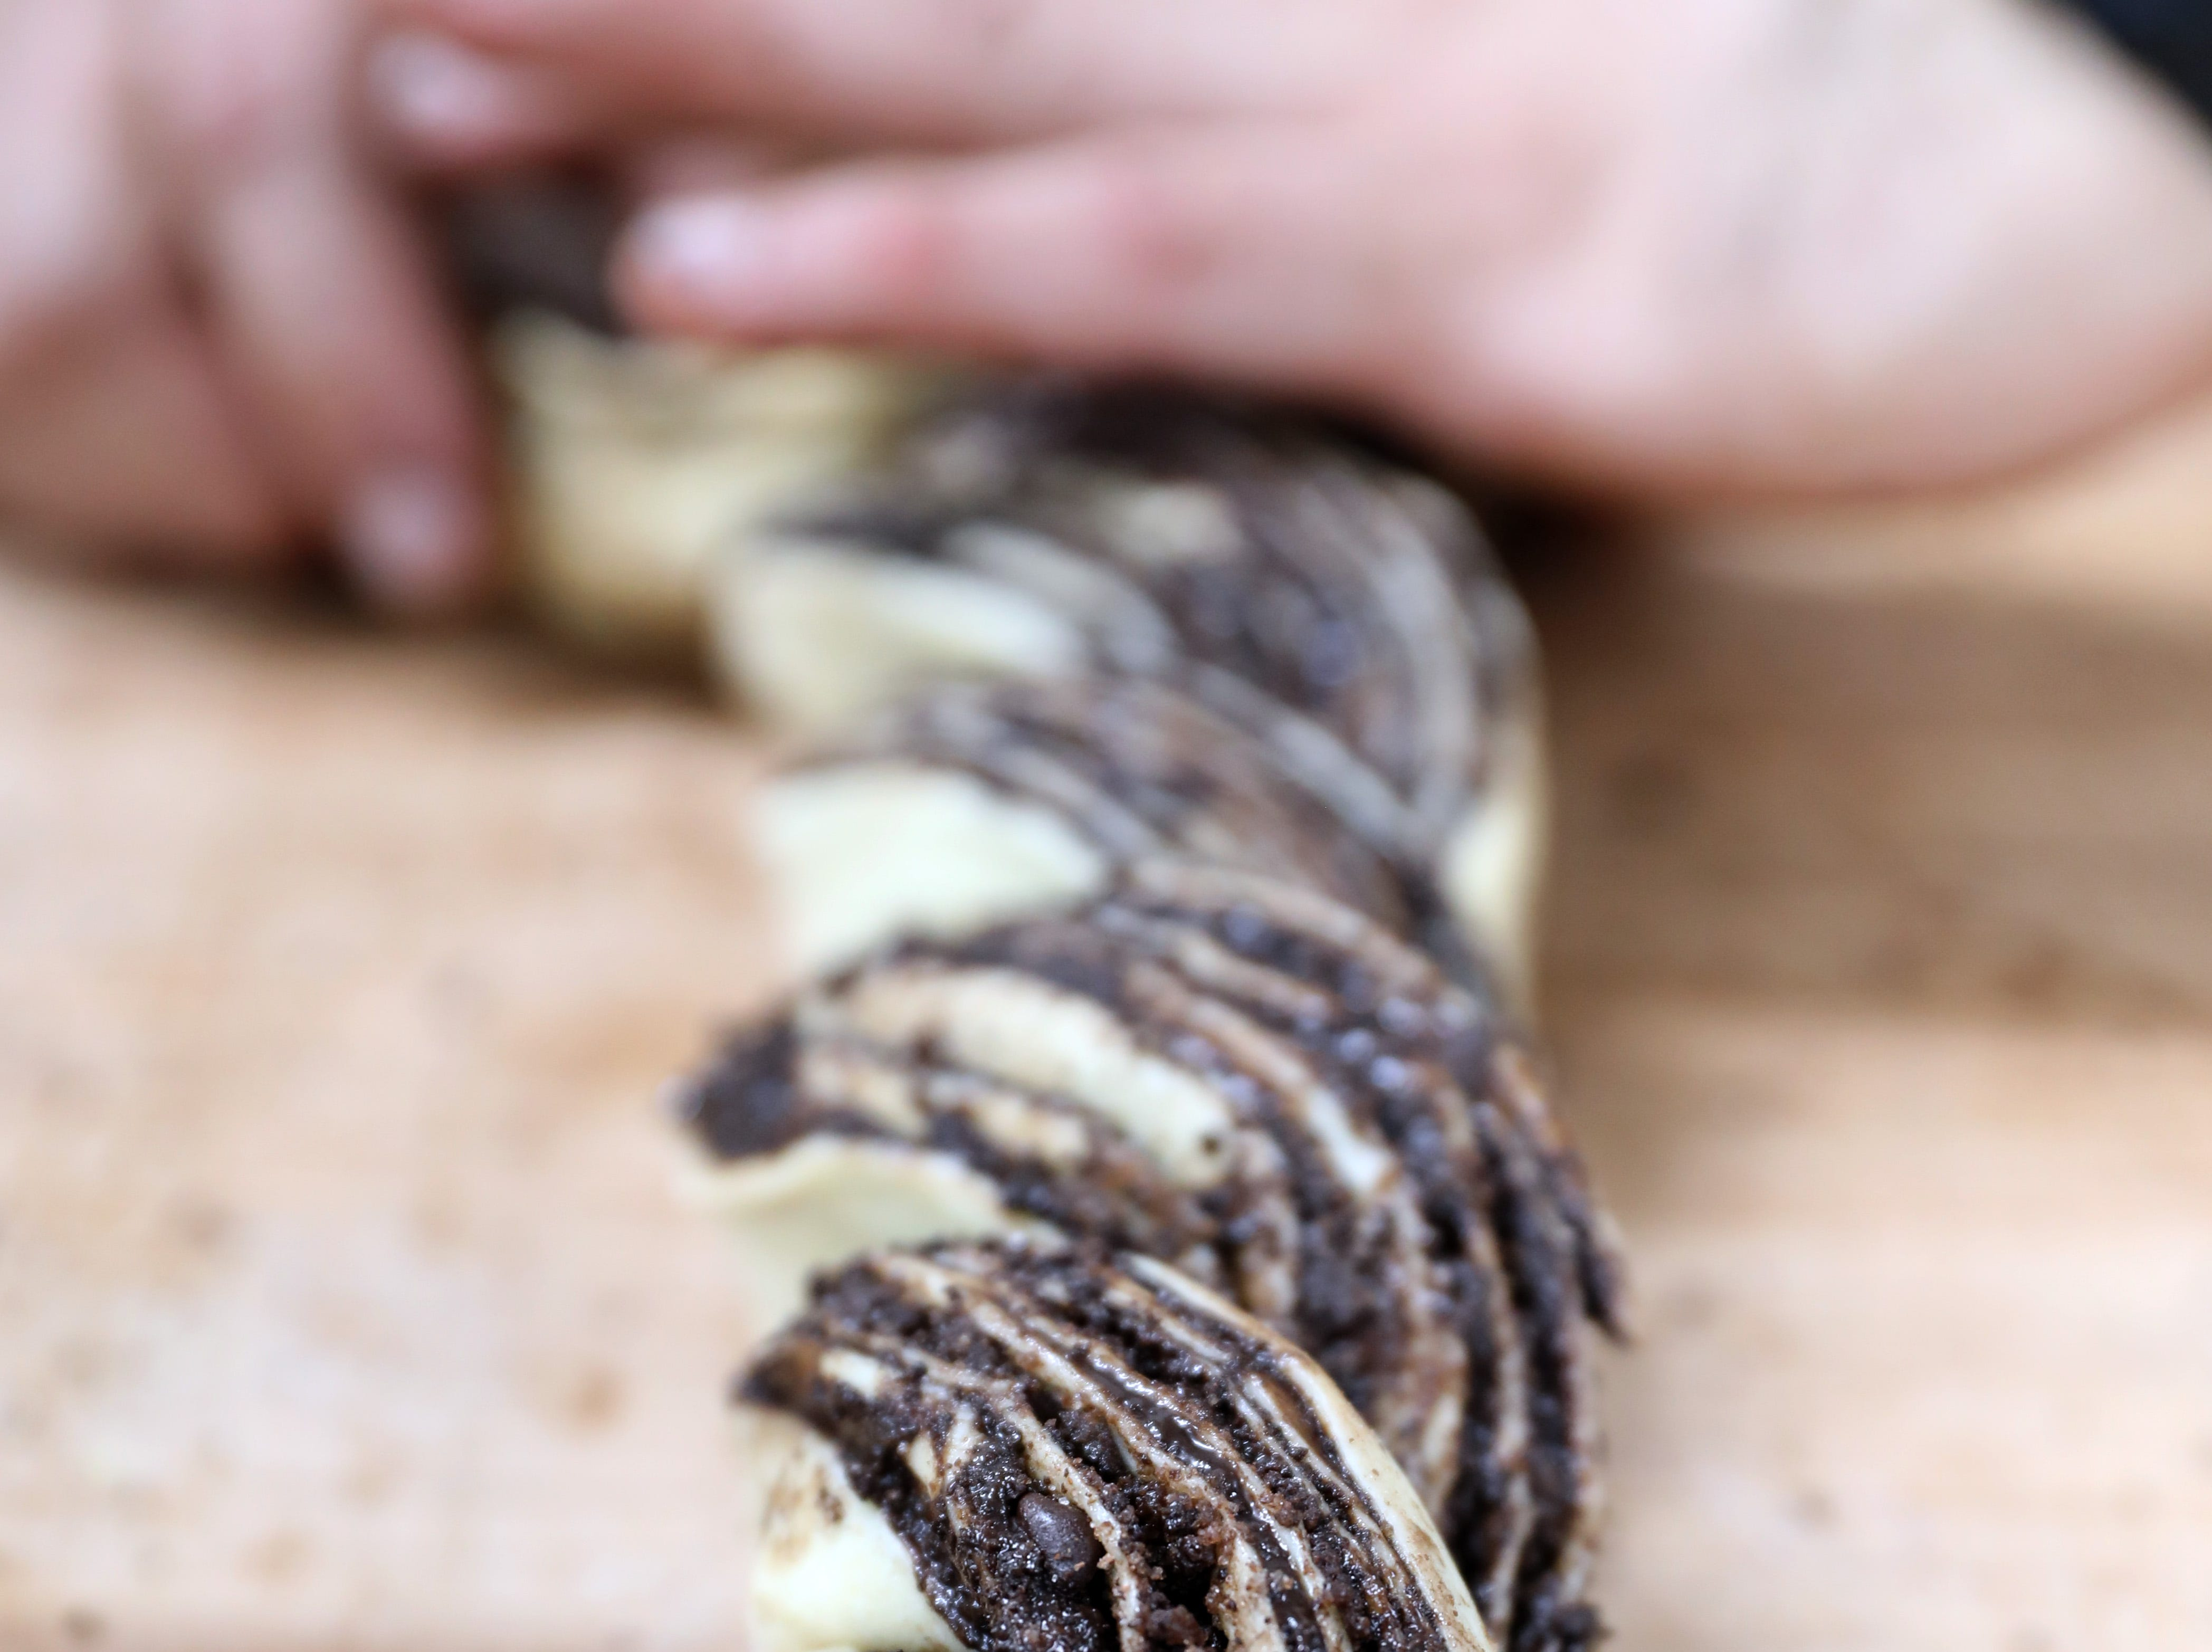 A chocolate babka is braided at Martine's Fine Bake Shoppe in Tuckahoe Nov. 29, 2018. The family bakery, which has a second location in Scarsdale, is celebrating their 10th anniversary in business.